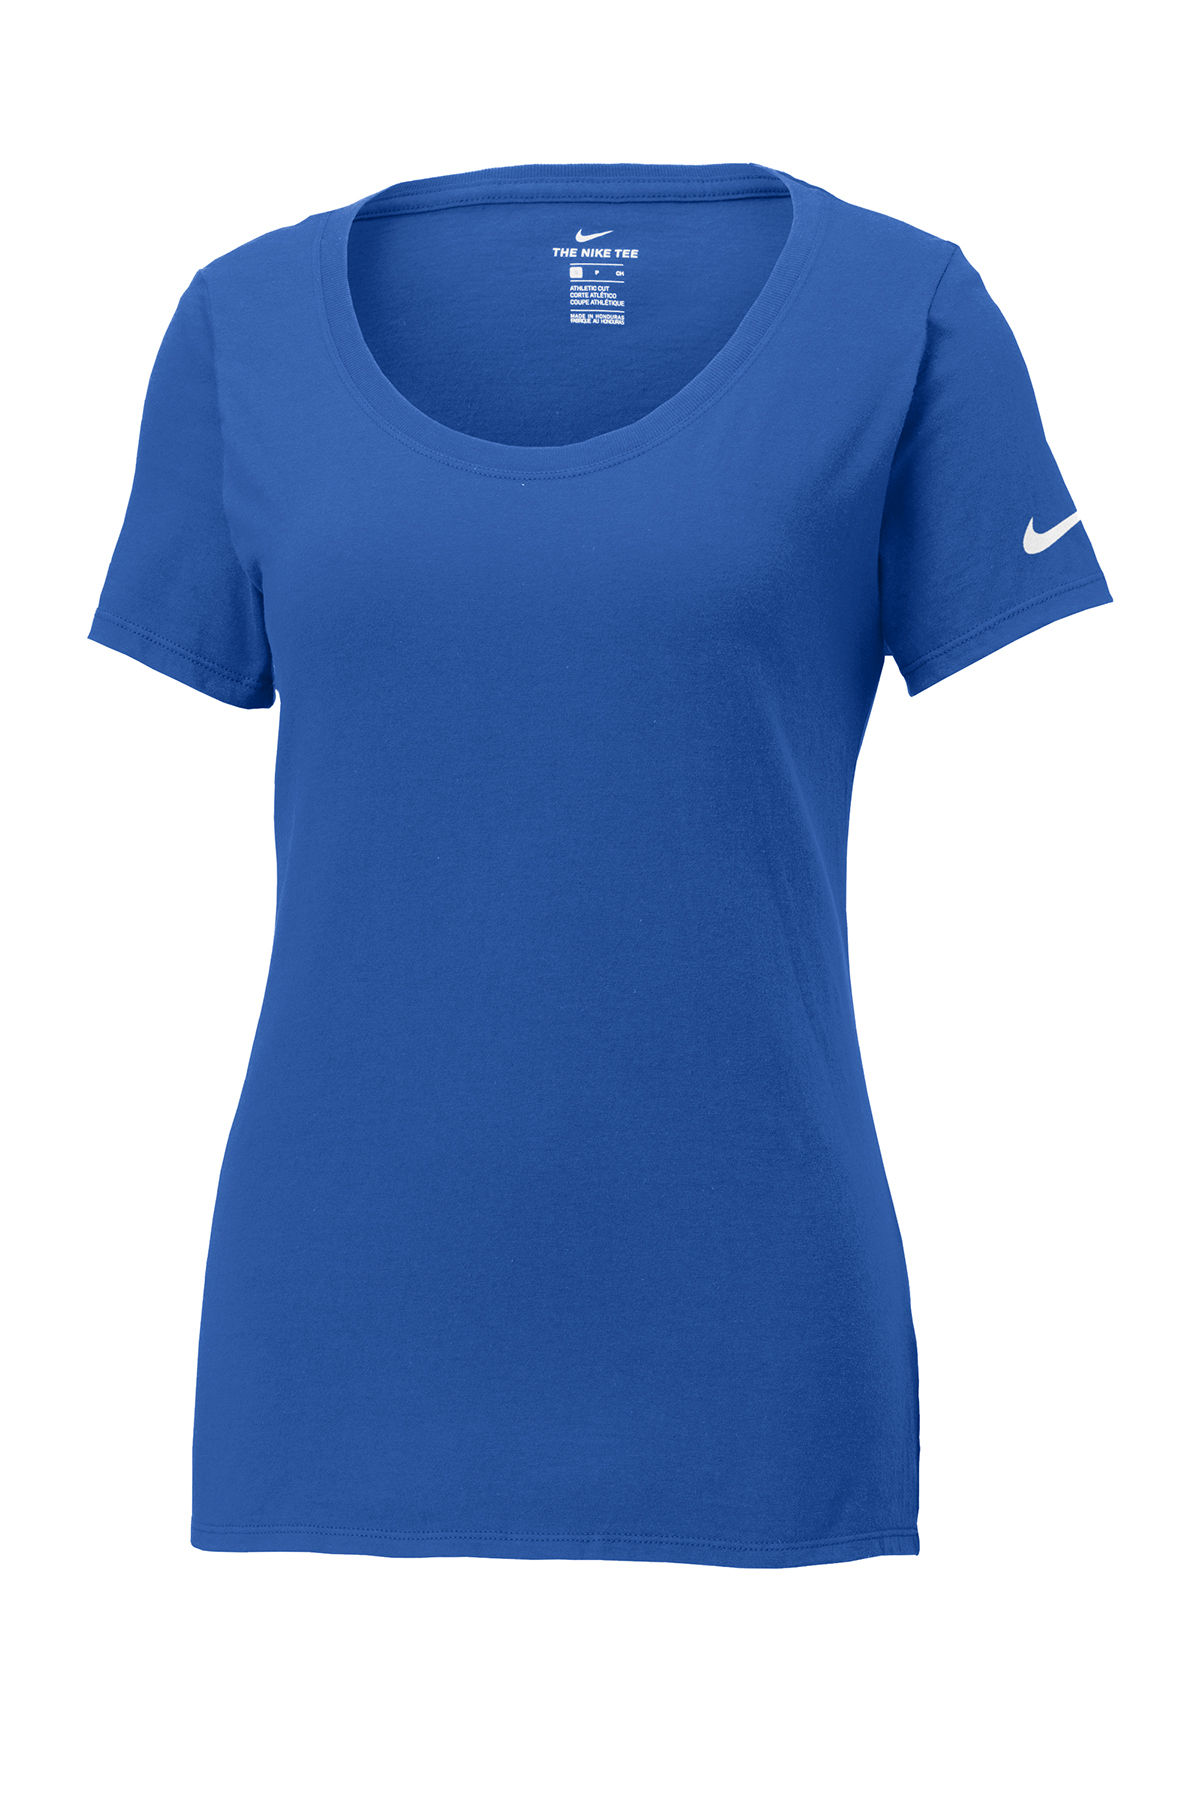 Nike Golf NKBQ5236 - Ladies Core Cotton Scoop Neck Tee